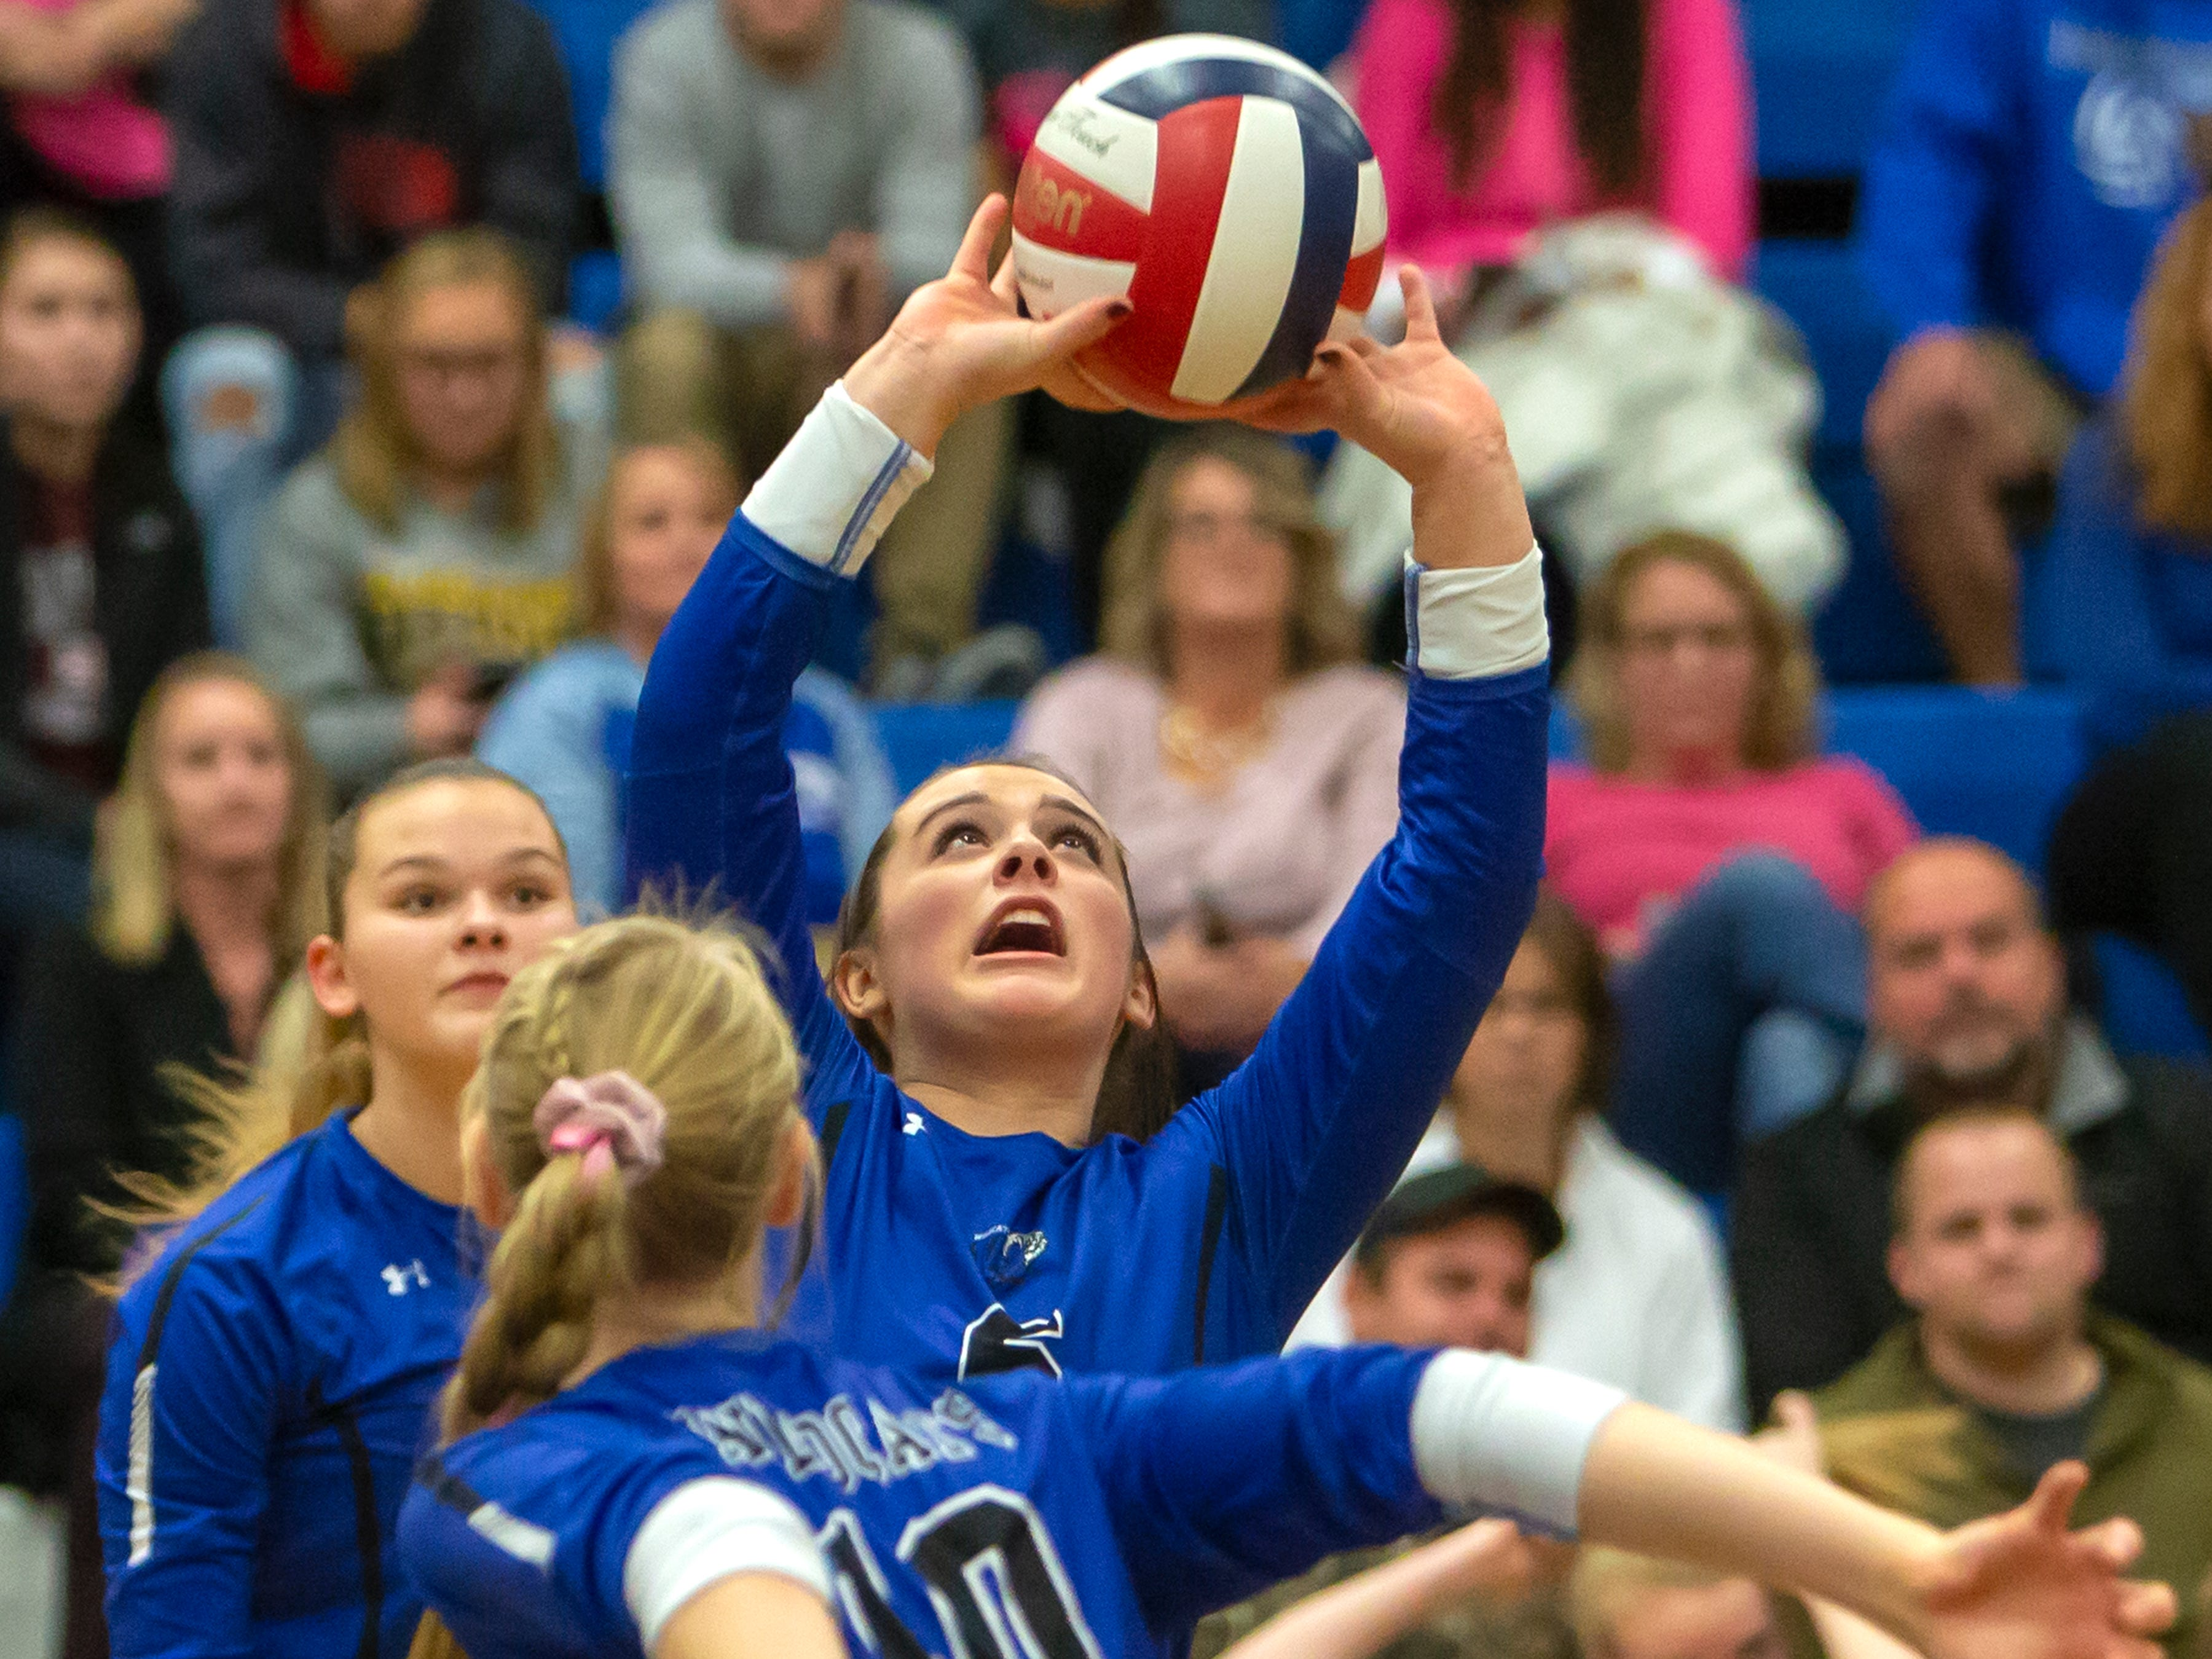 Oshkosh West's Madigan Carlson sets the ball for Natalie Johanknecht playing at Oshkosh West High School on Thursday, October 11, 2018.